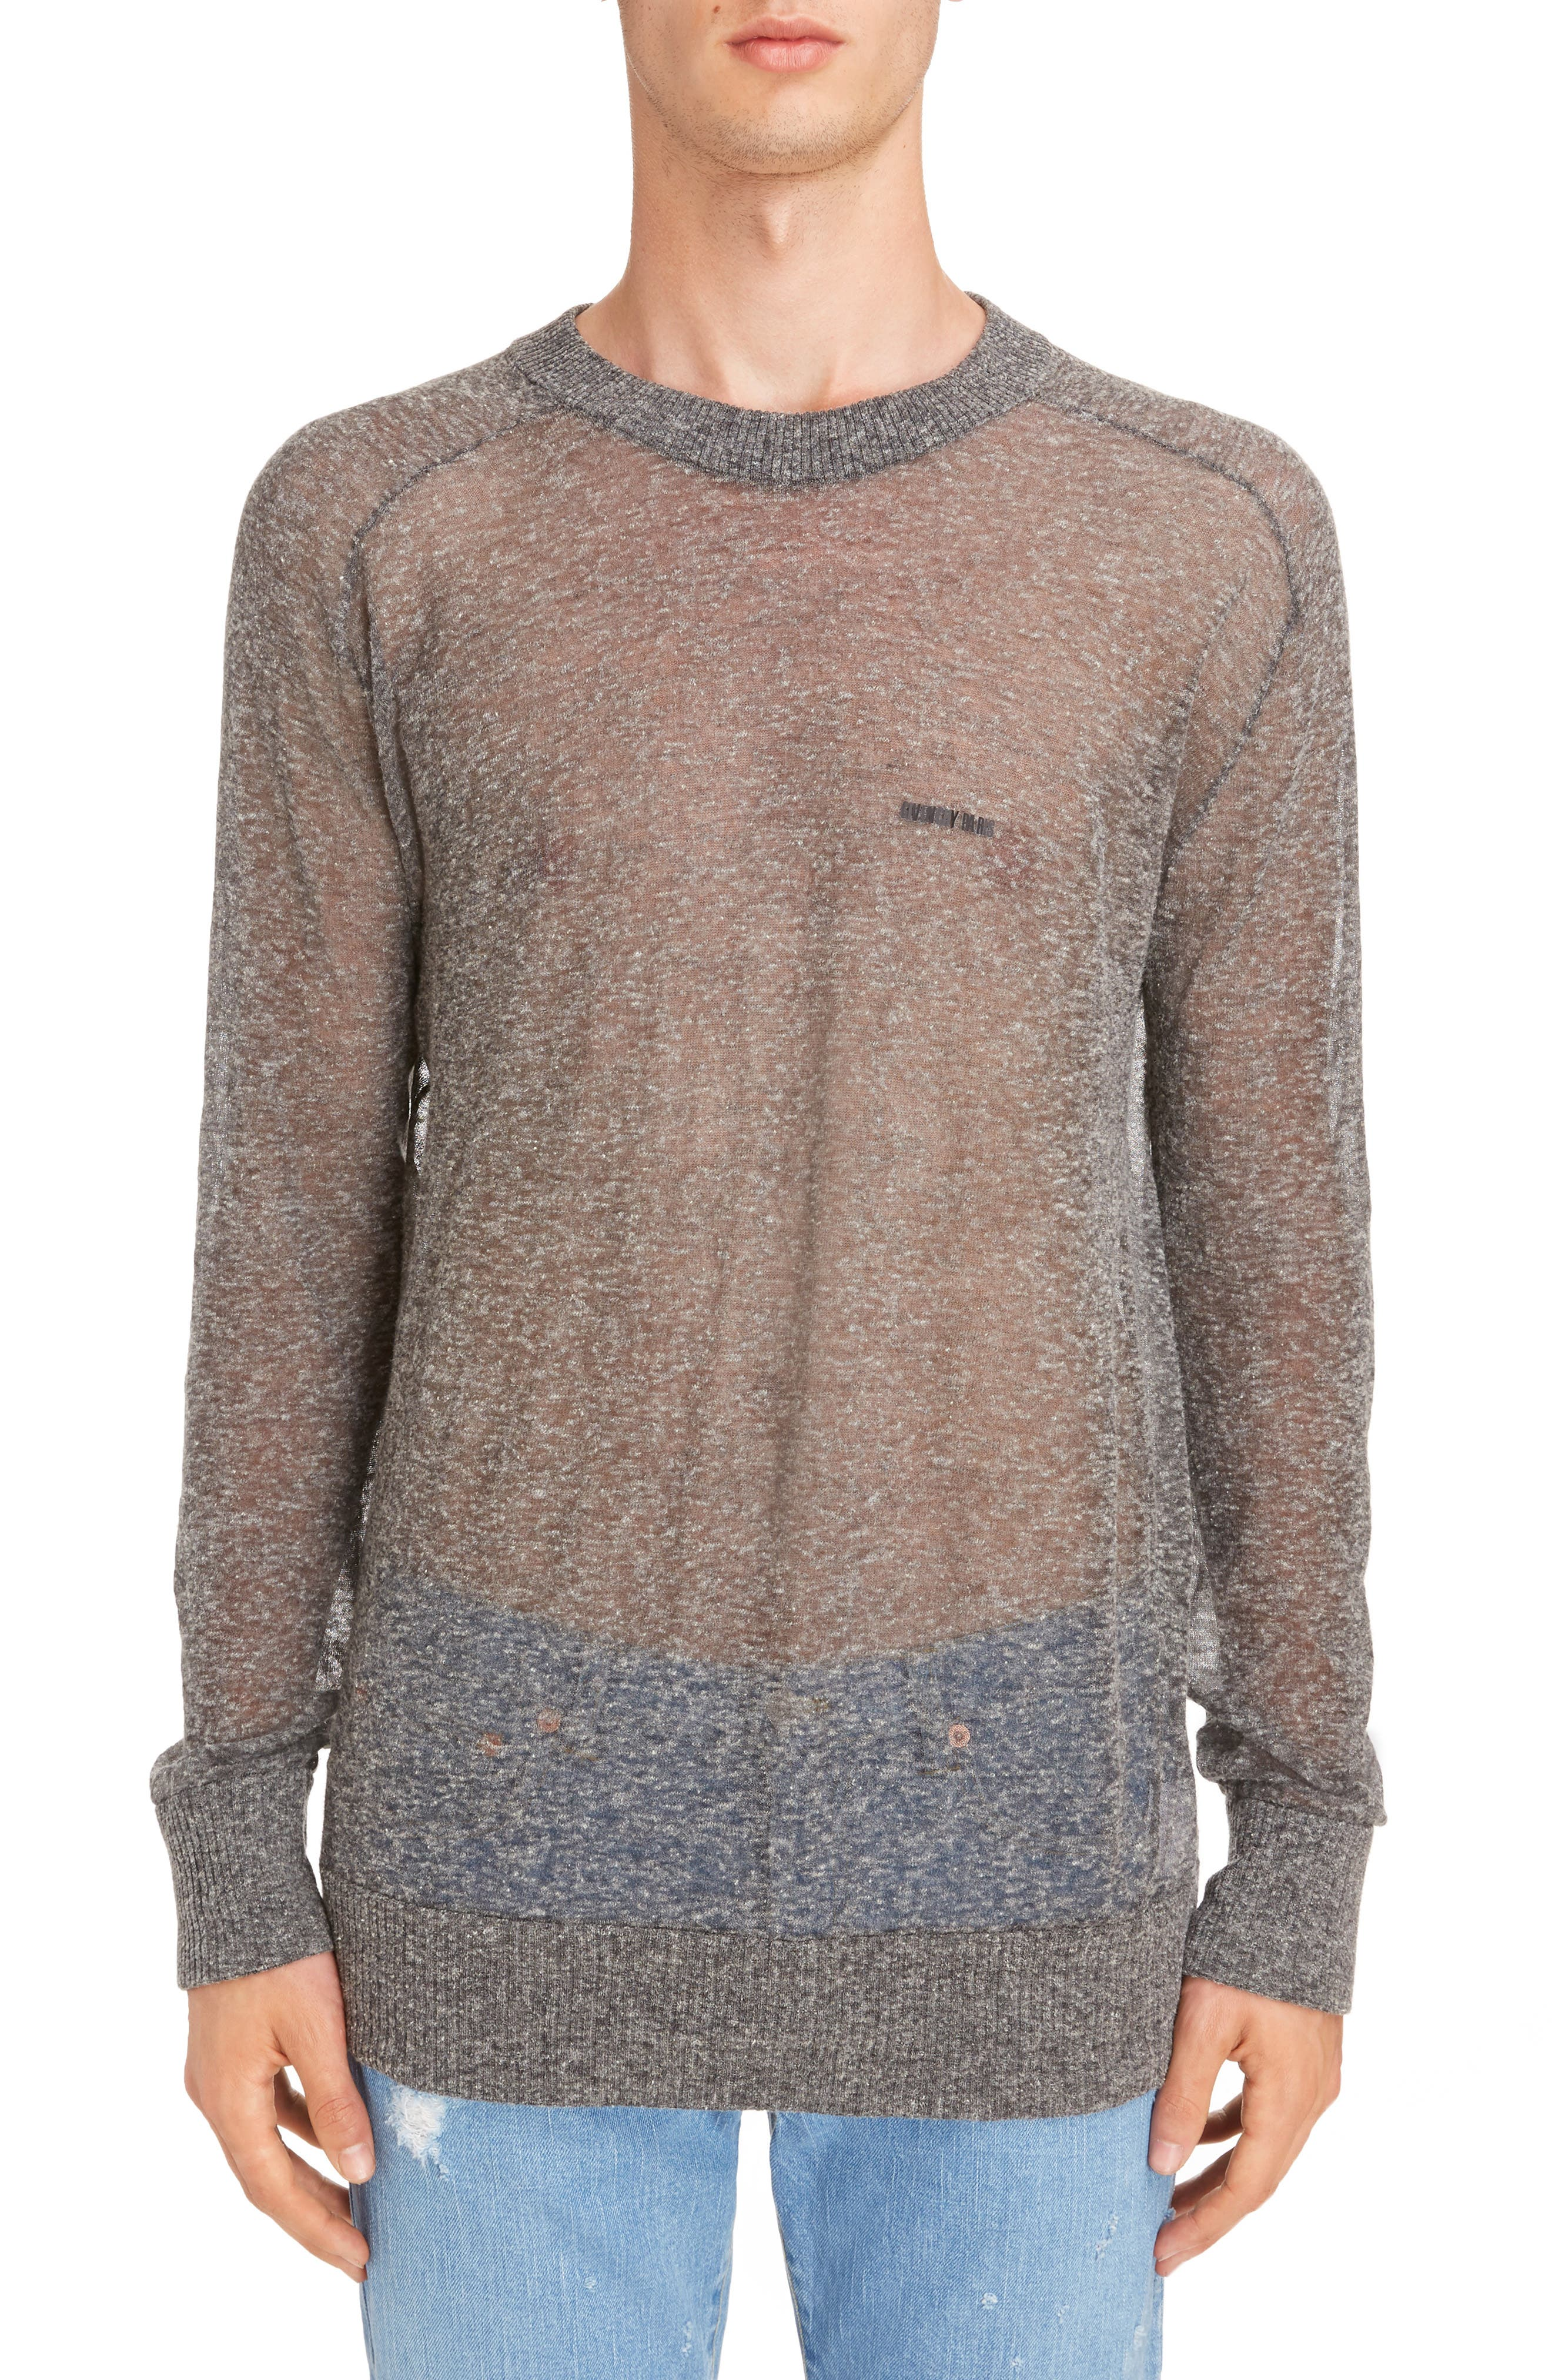 Technical Linen Blend Crewneck Sweater,                         Main,                         color, 020